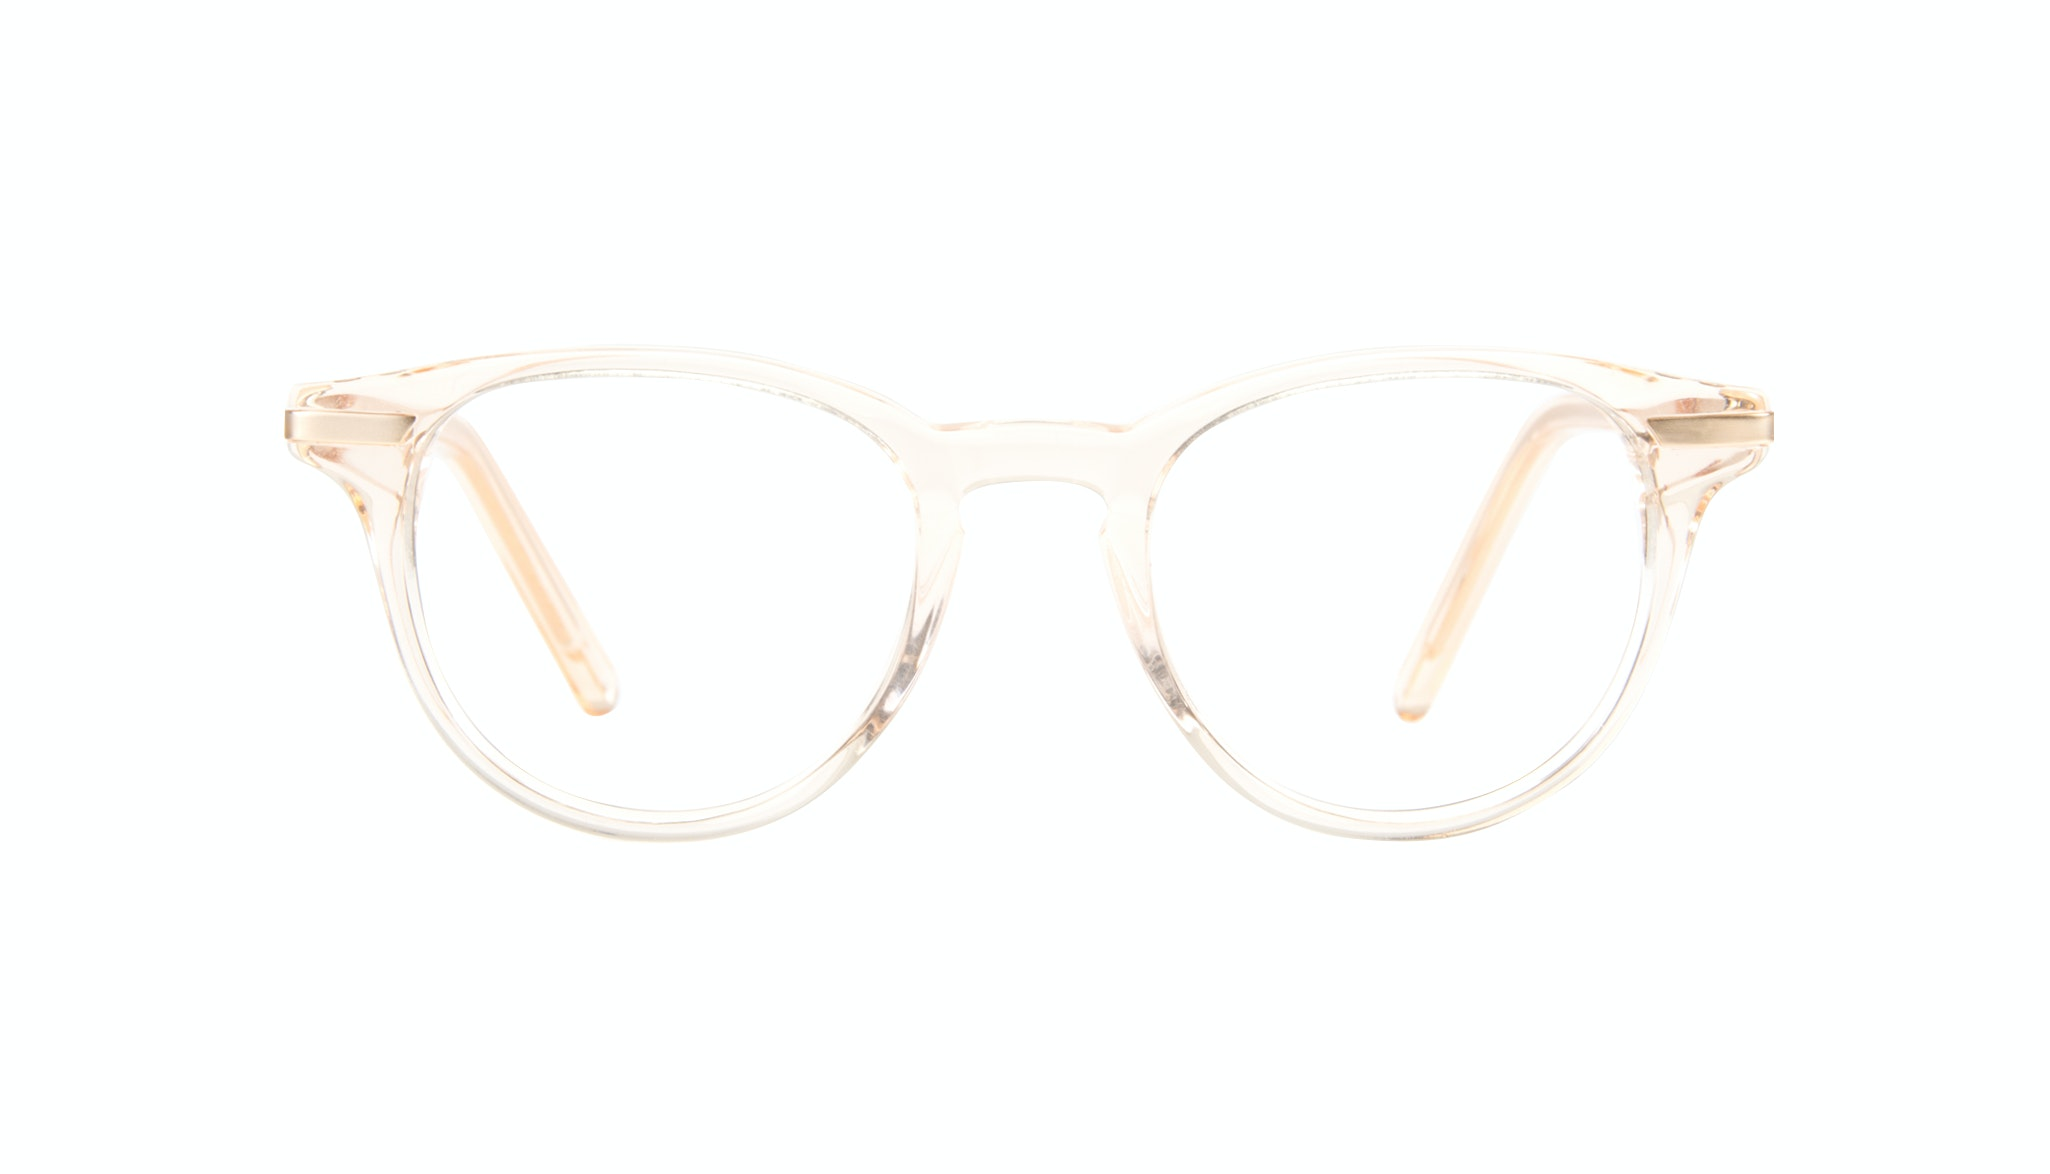 Affordable Fashion Glasses Round Eyeglasses Women Spark Blond